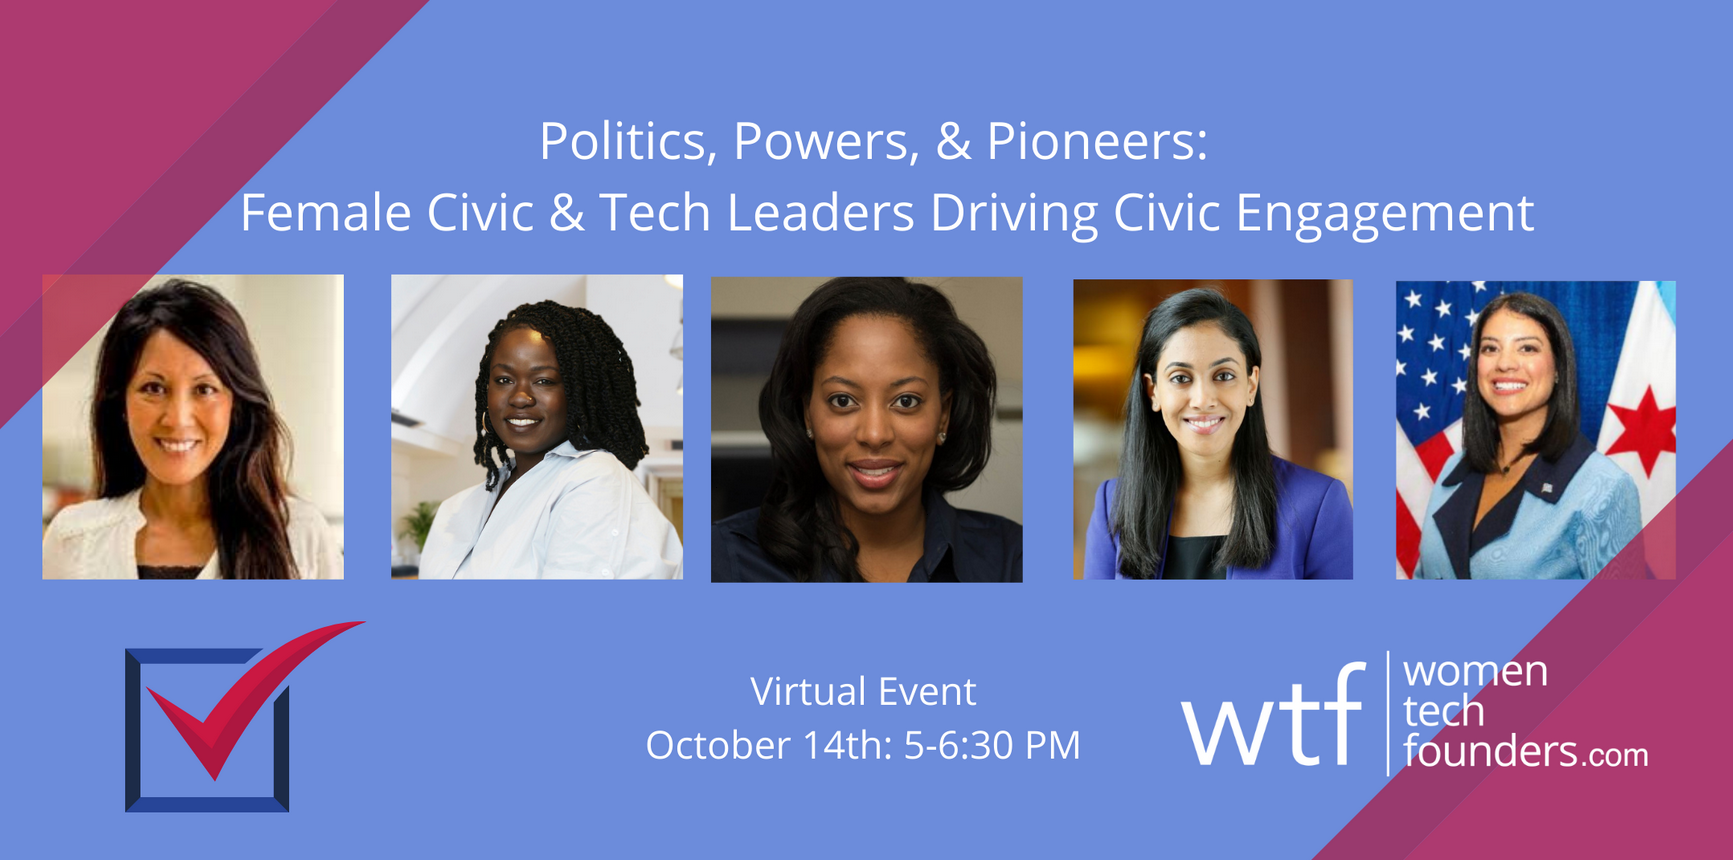 Politics, Power, & Pioneers: Female Civic & Tech Leaders Driving Civic Engagement